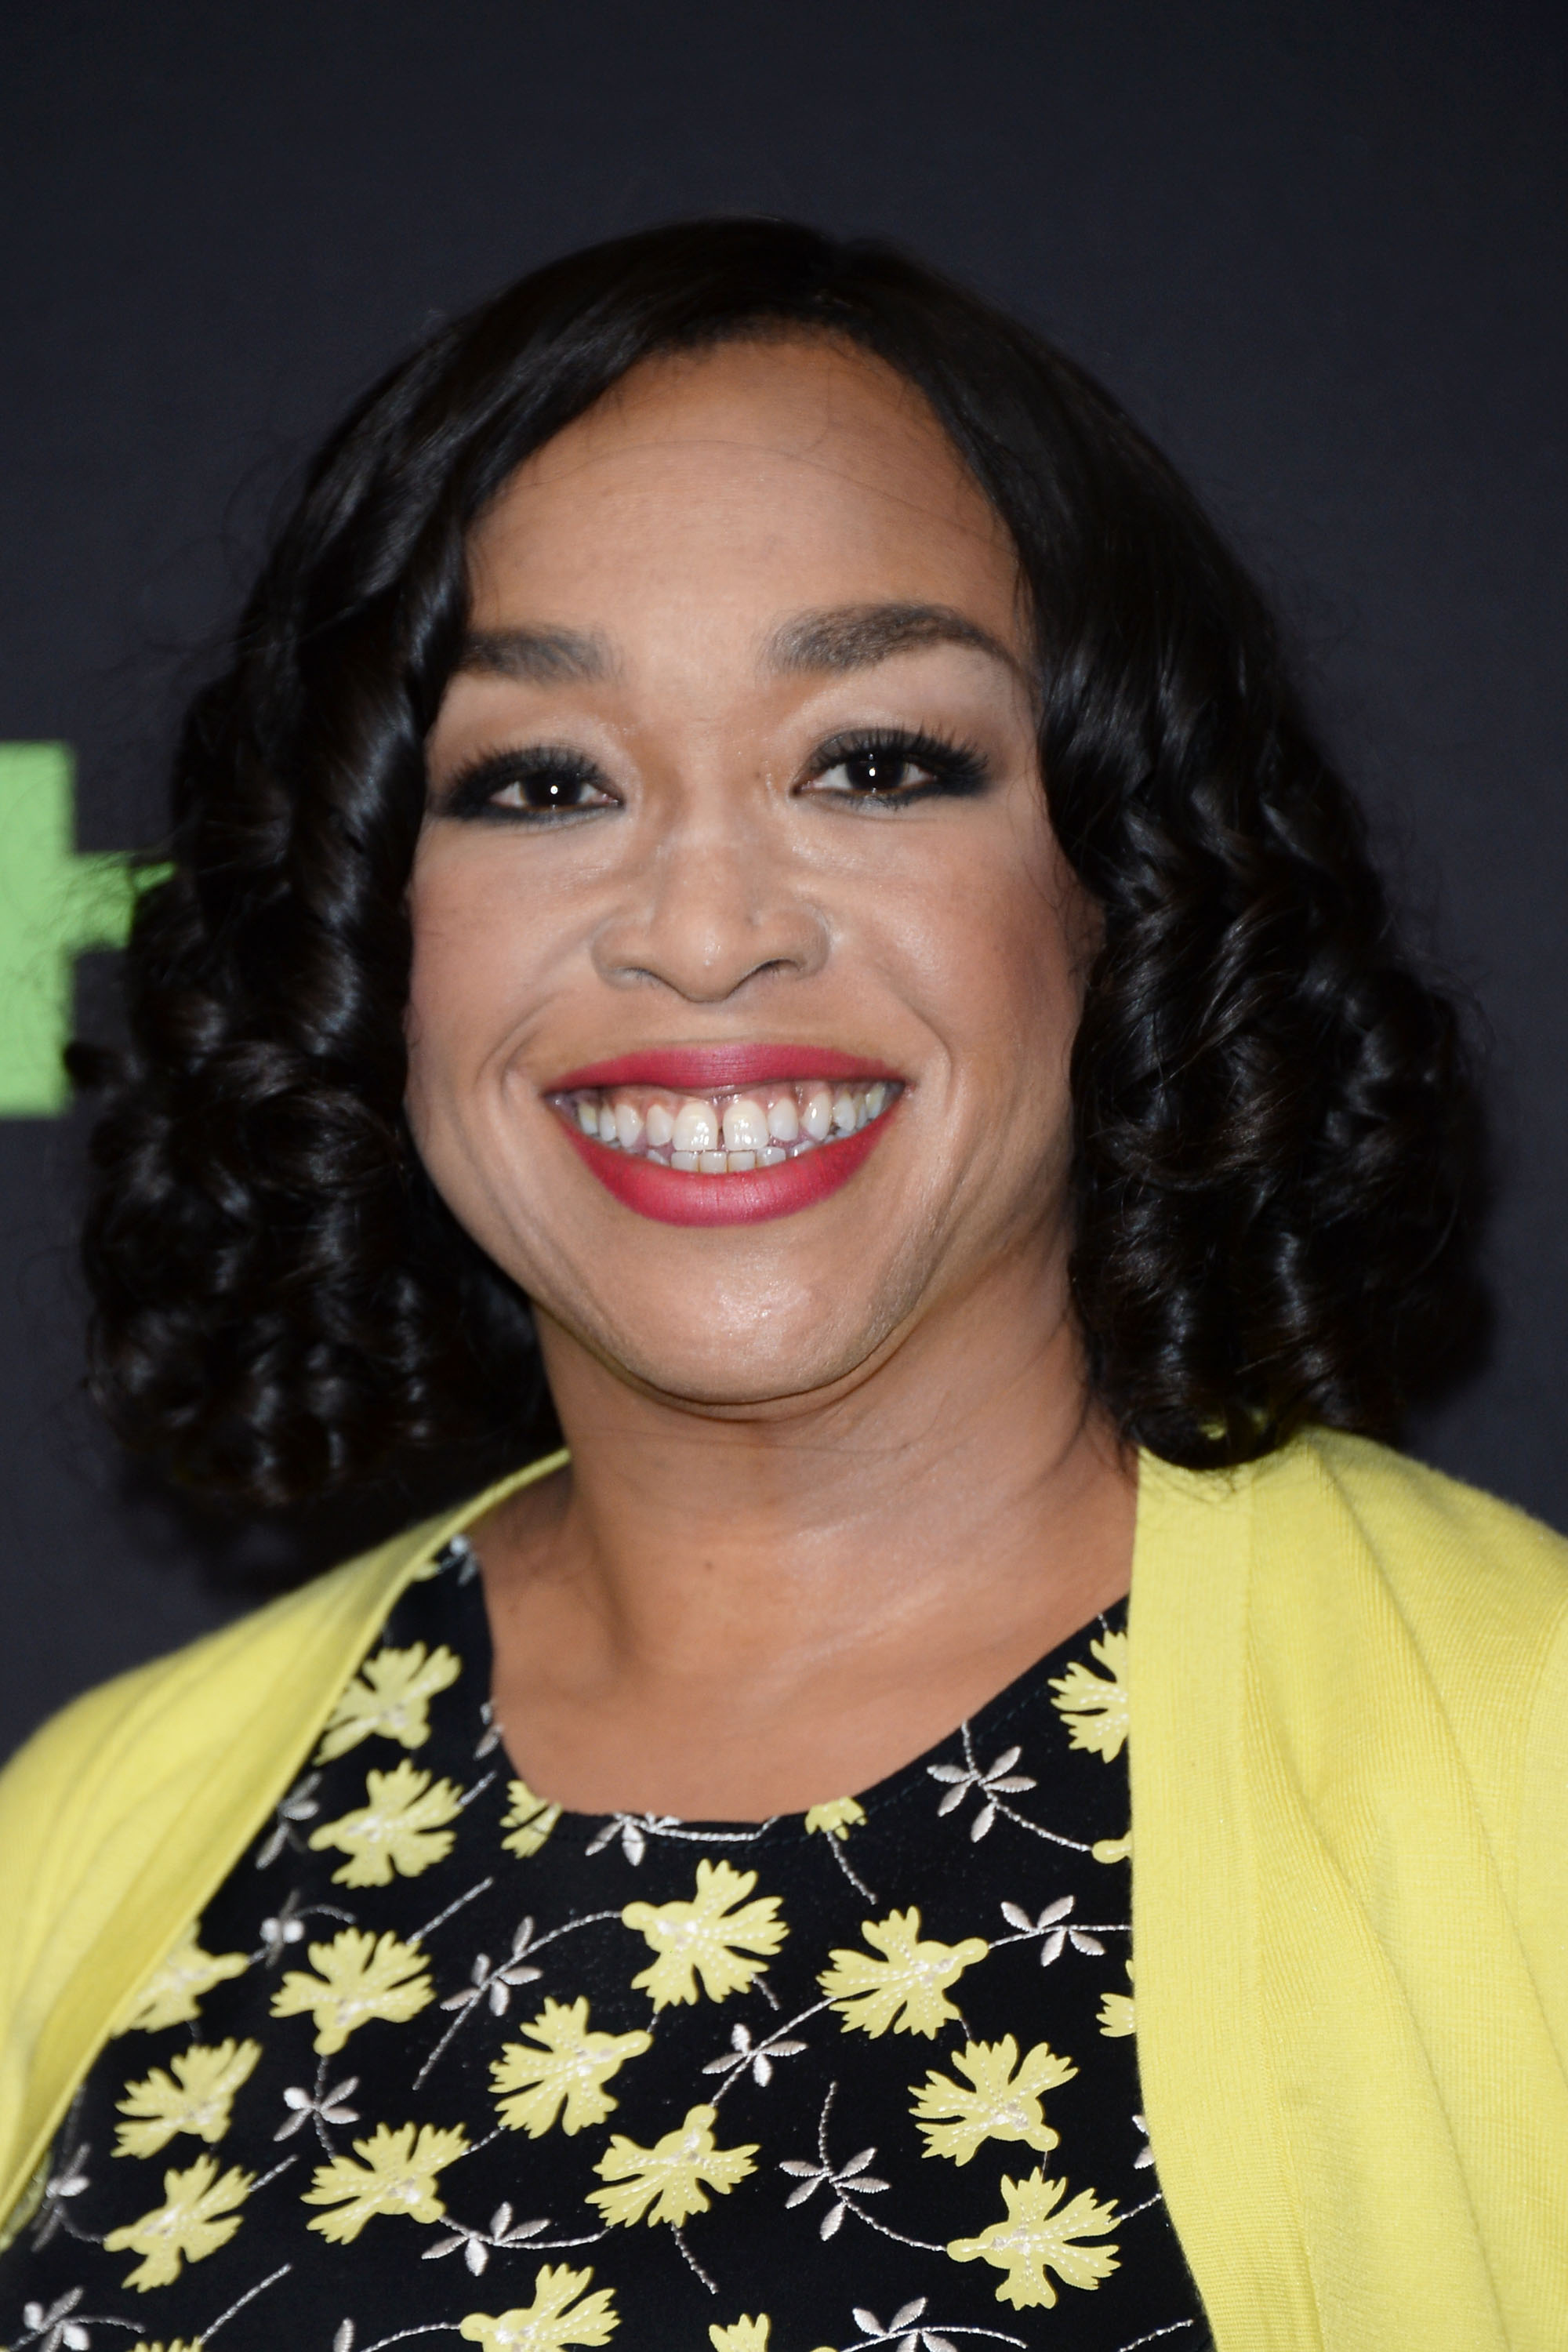 Shonda Rhimes Partakes in Year of Yes' Challenge, Writes Book